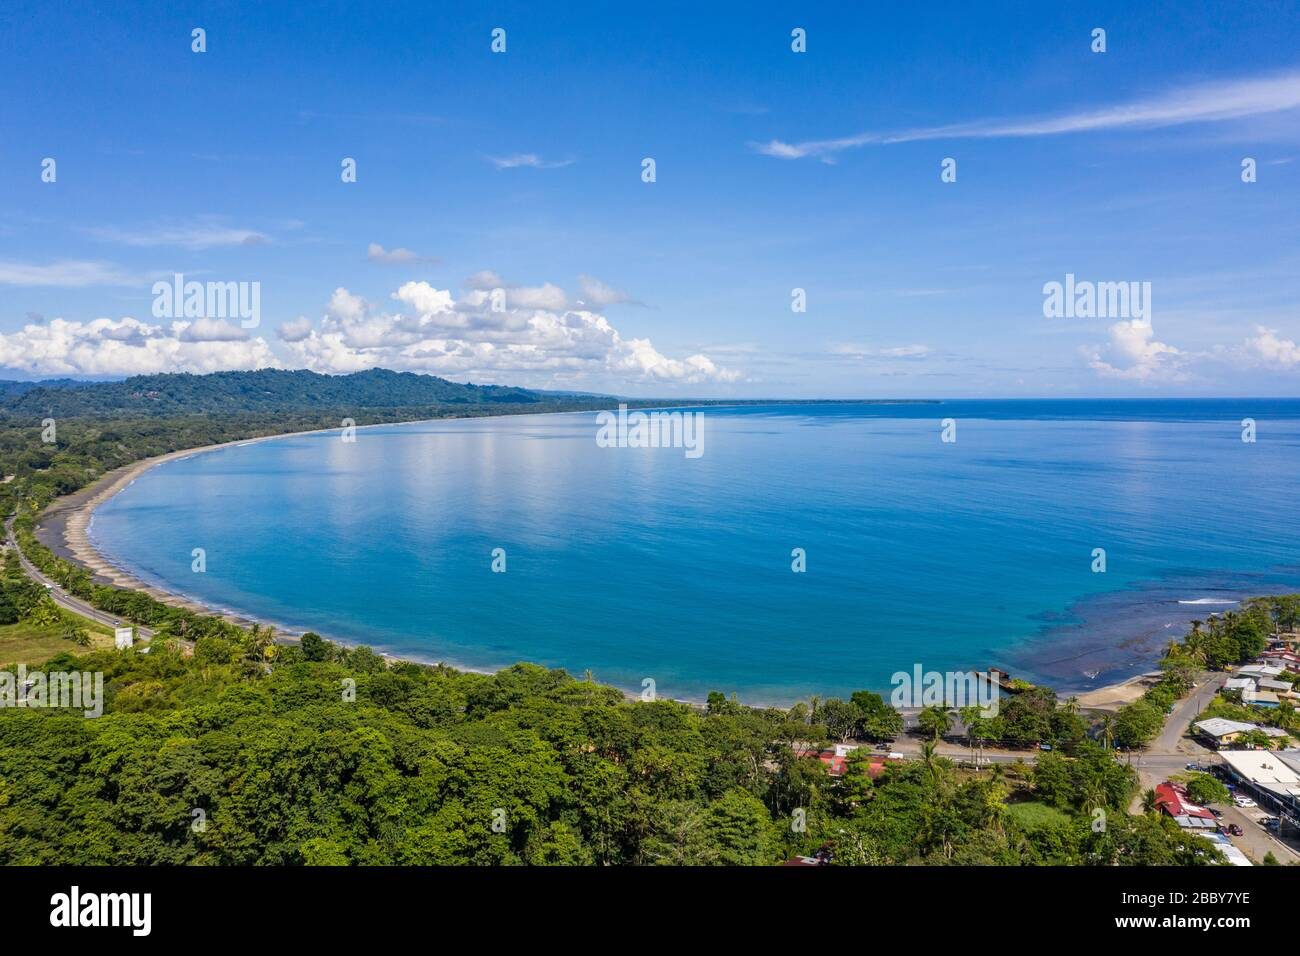 Aerial view facing Playa Negra and the southern coastal Caribbean town of Puerto Viejo de Talamanca in Limón Province, Costa Rica. Stock Photo